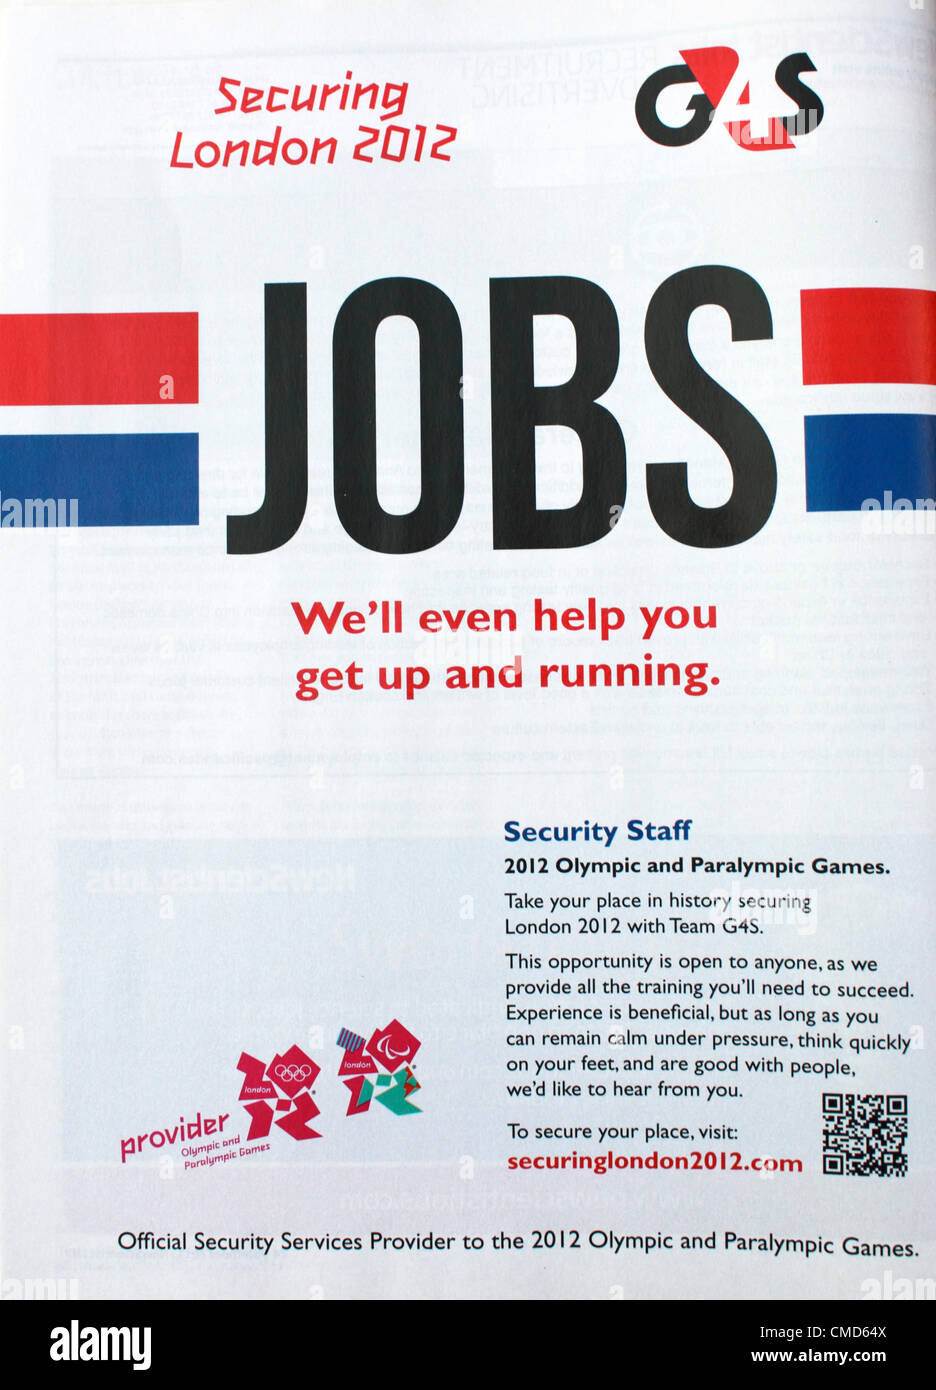 G4S job advert for London Olympic 2012 Security Staff, posted in New Scientist job section 24 December 2011 Stock Photo